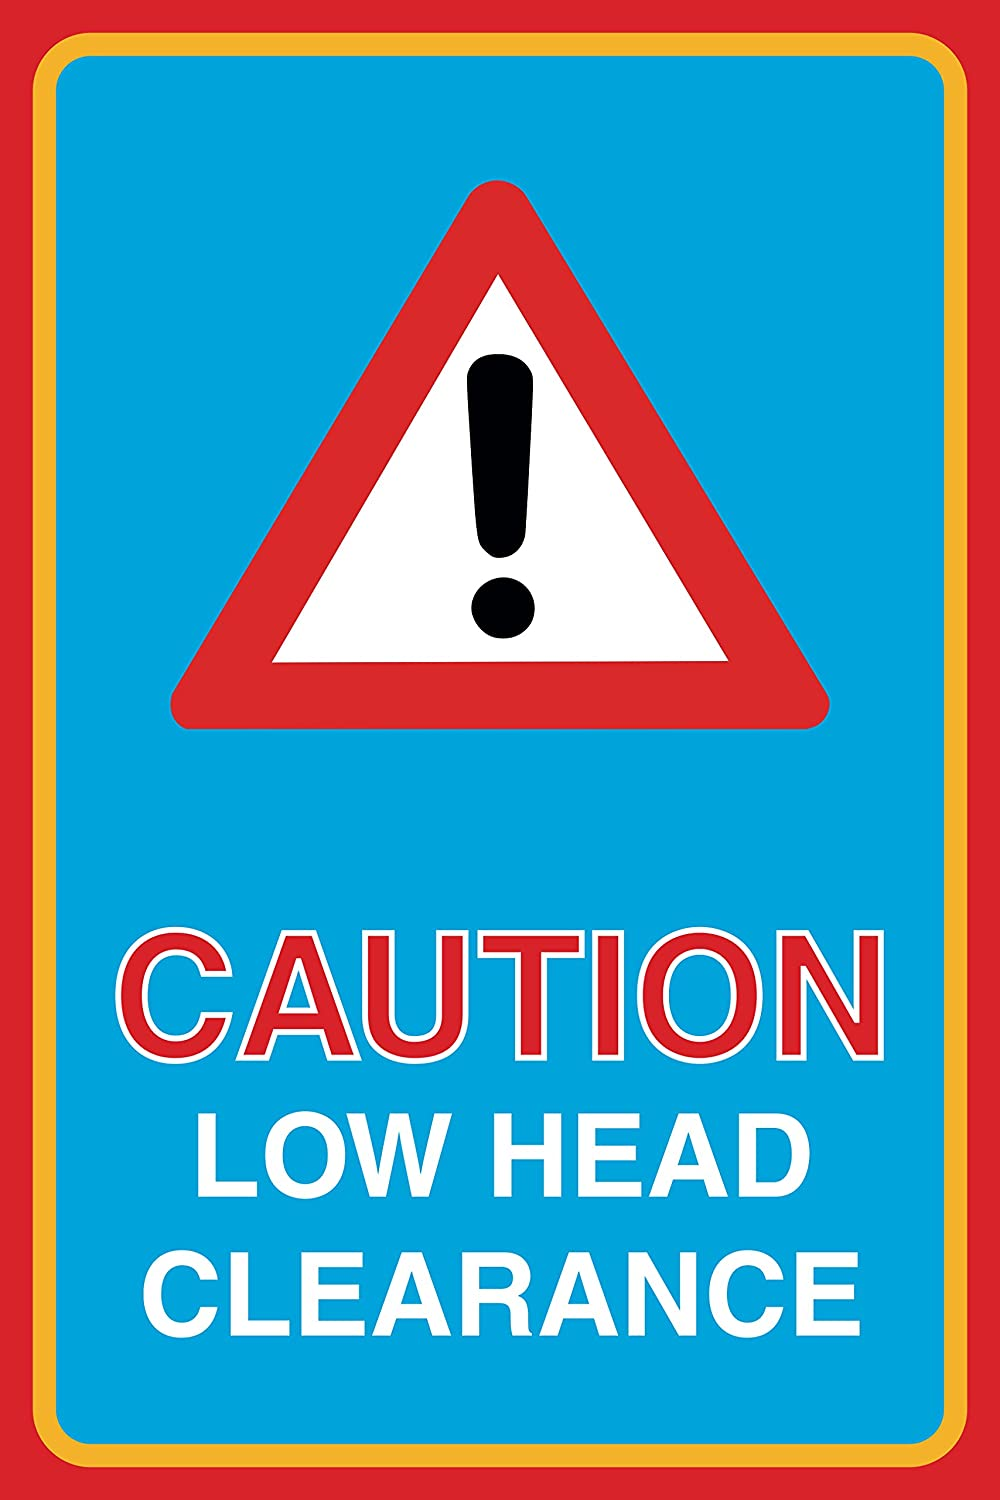 12x18 Caution Low Head Clearance Print Warning Notice Large Road Street Office Business Sign Aluminum Metal 4 Pack